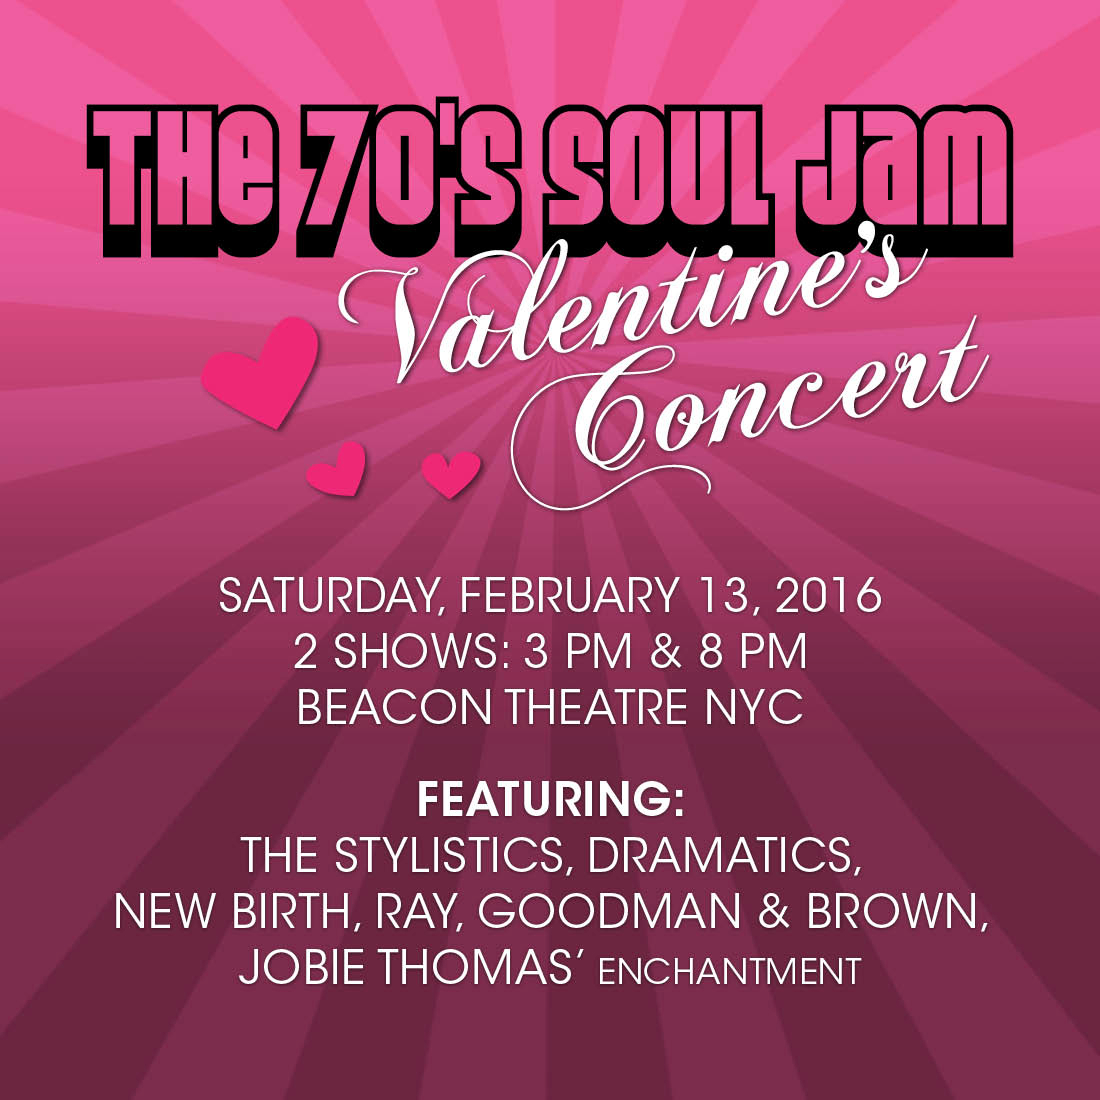 the annual 70s soul jam valentines concert featuring 5 top classic soulrb acts returns to the beacon theatre saturday february 13 shows at 3pm 8pm - Valentines Day Concert